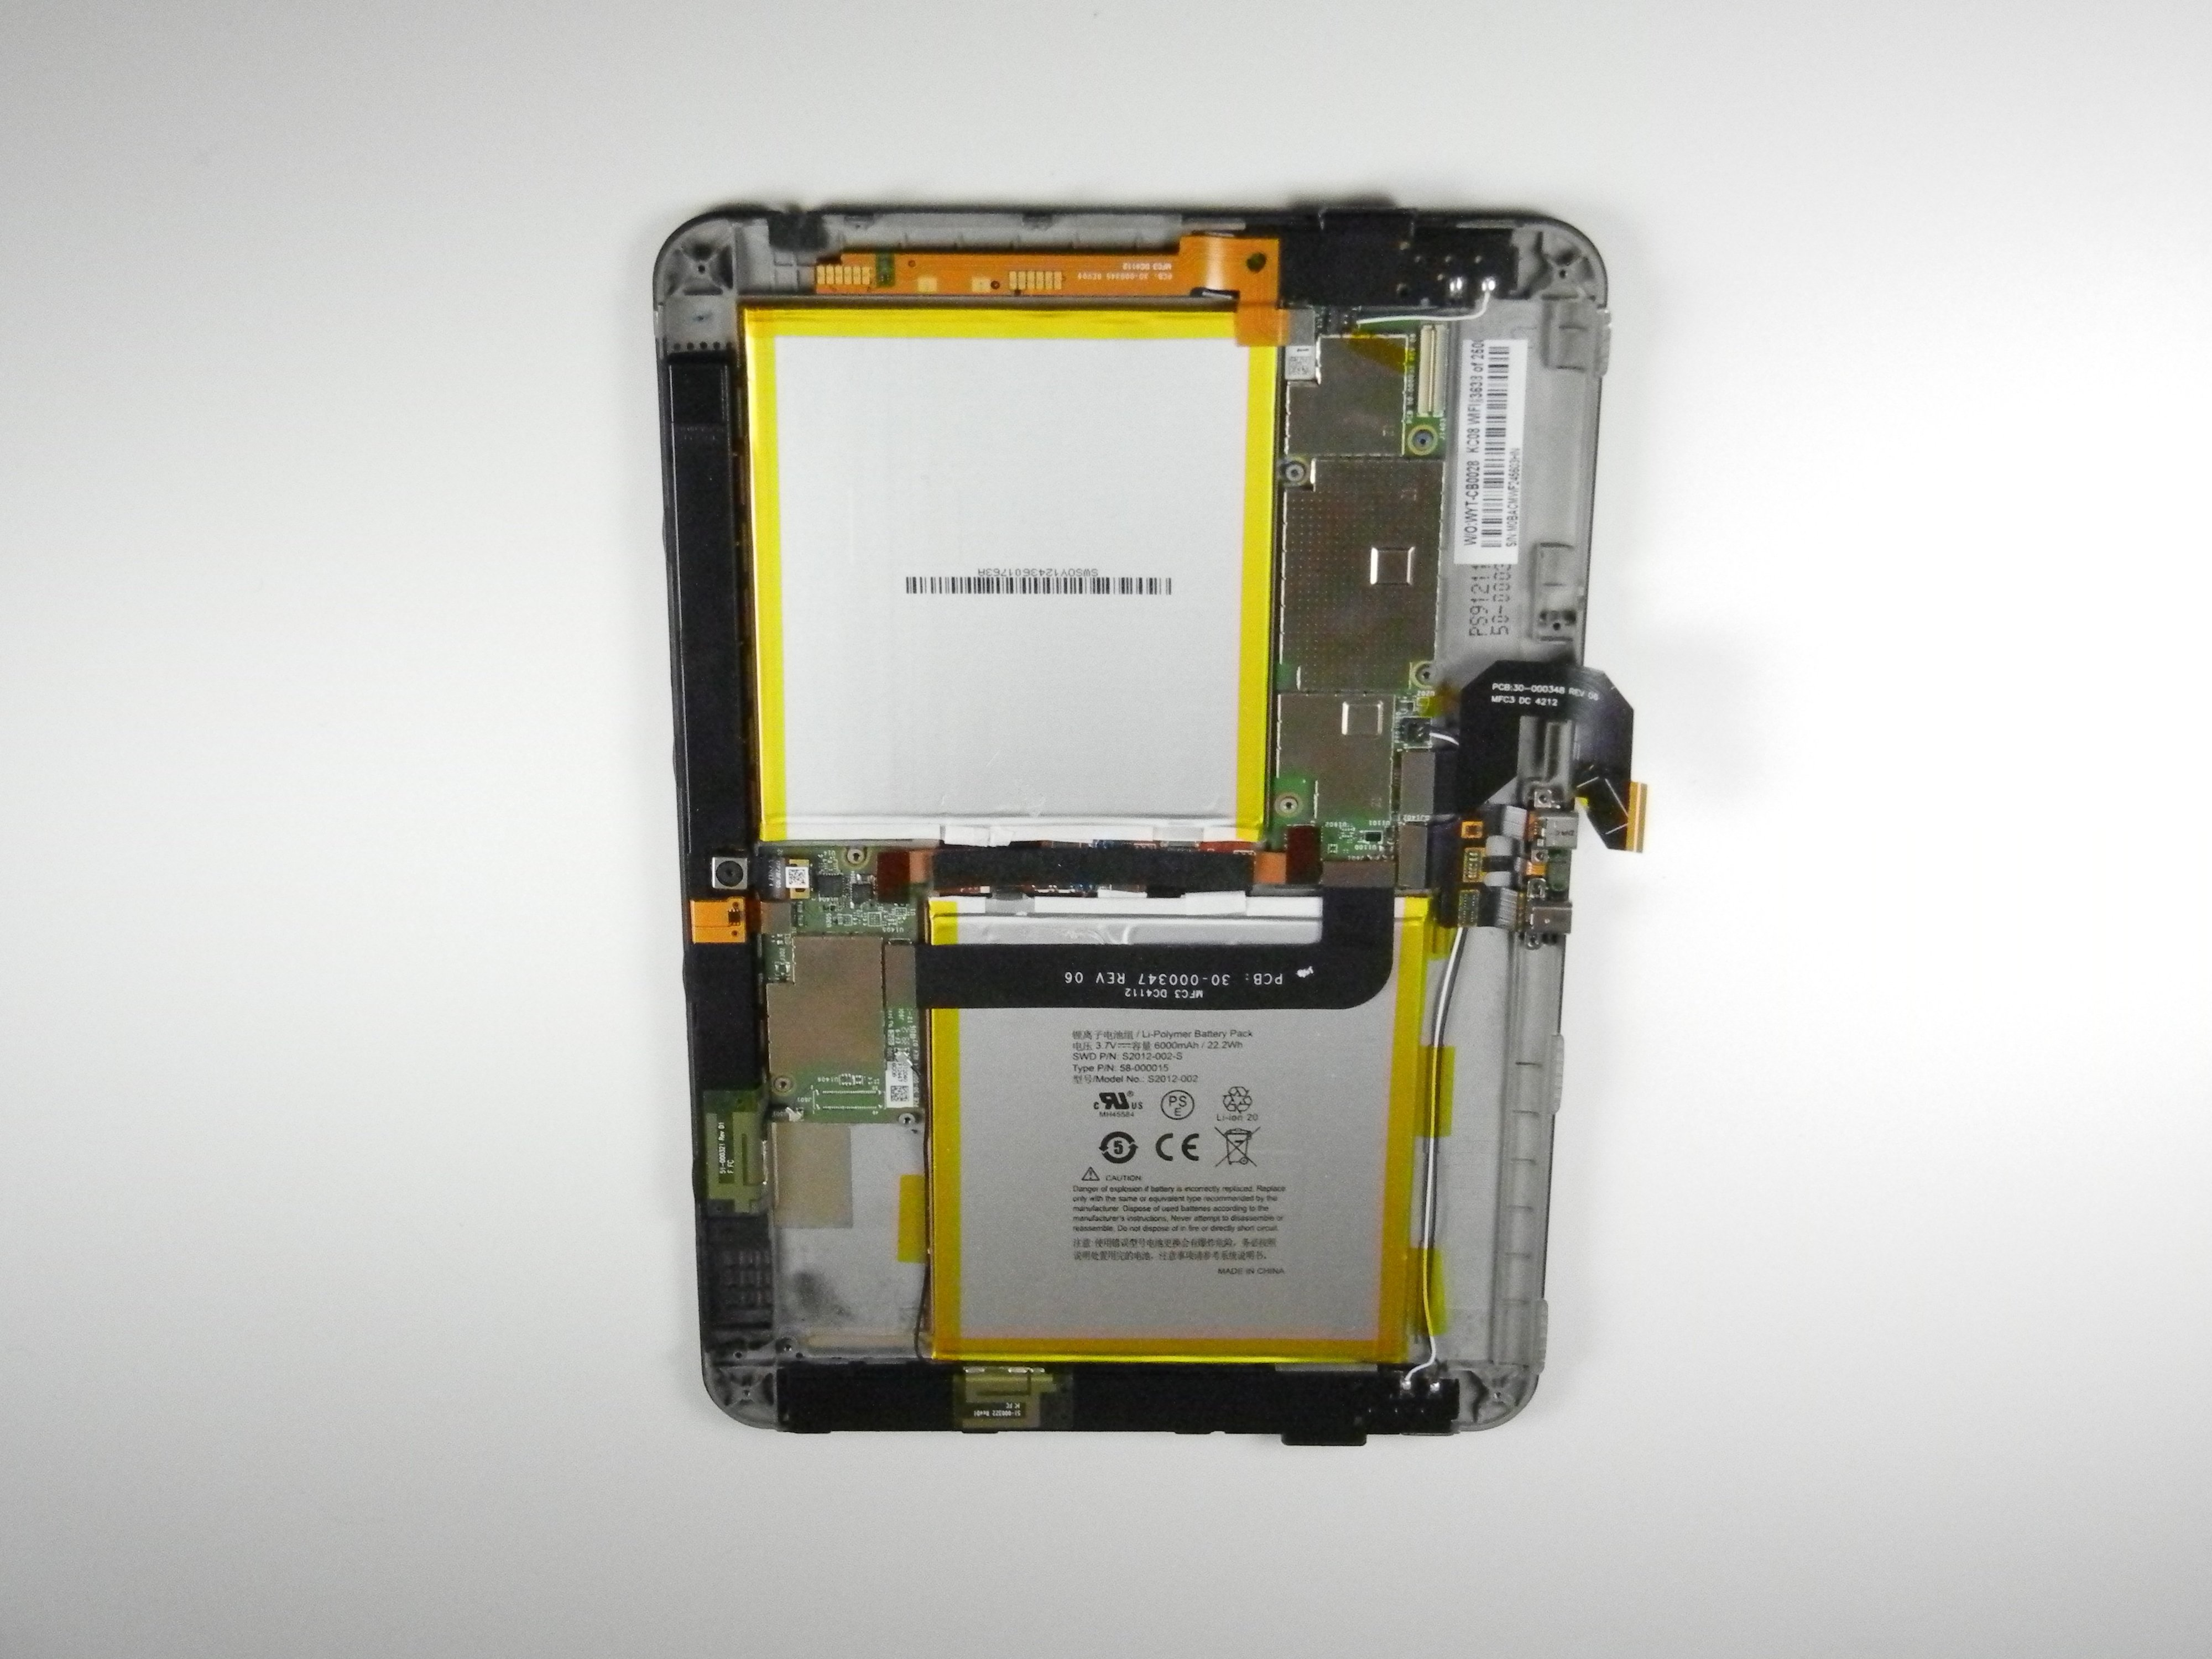 Amazon Kindle Fire Hd Battery Replacement